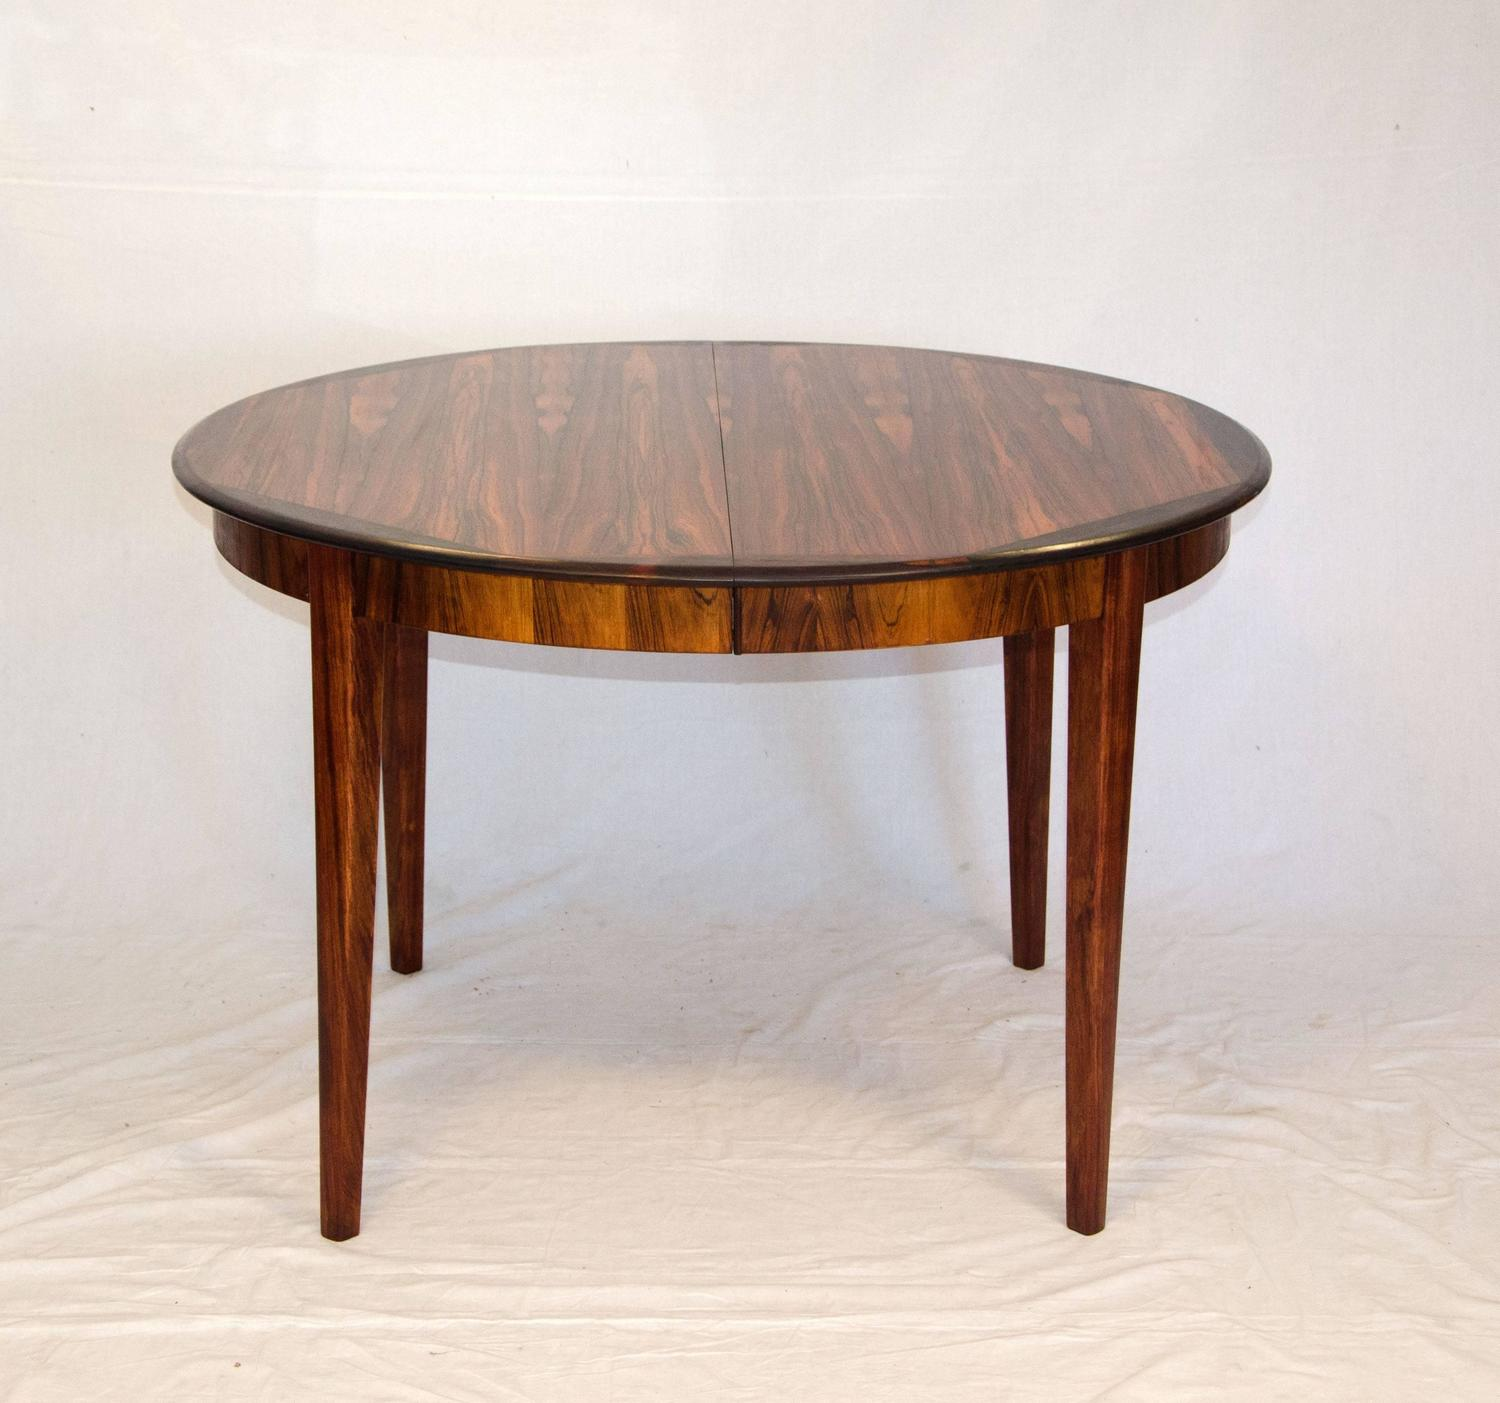 Danish Round Rosewood Dining Table Two Skirted Leaves  : 638RosewoodRoundDiningTableC2z from www.1stdibs.com size 1500 x 1403 jpeg 138kB